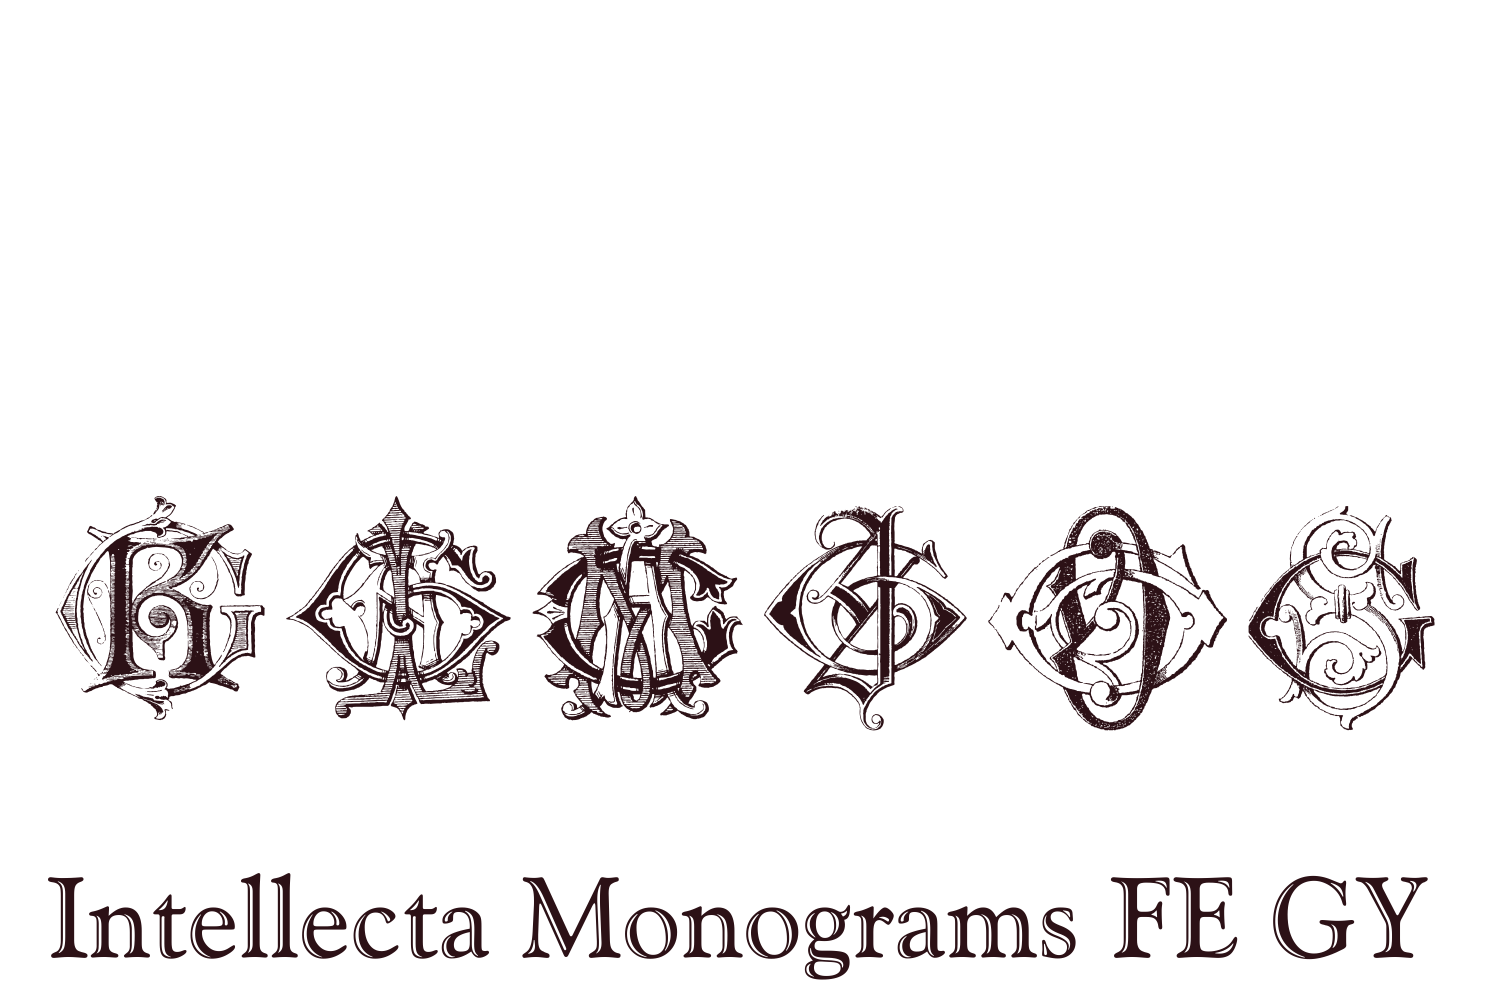 Intellecta Monograms FE GY example image 7